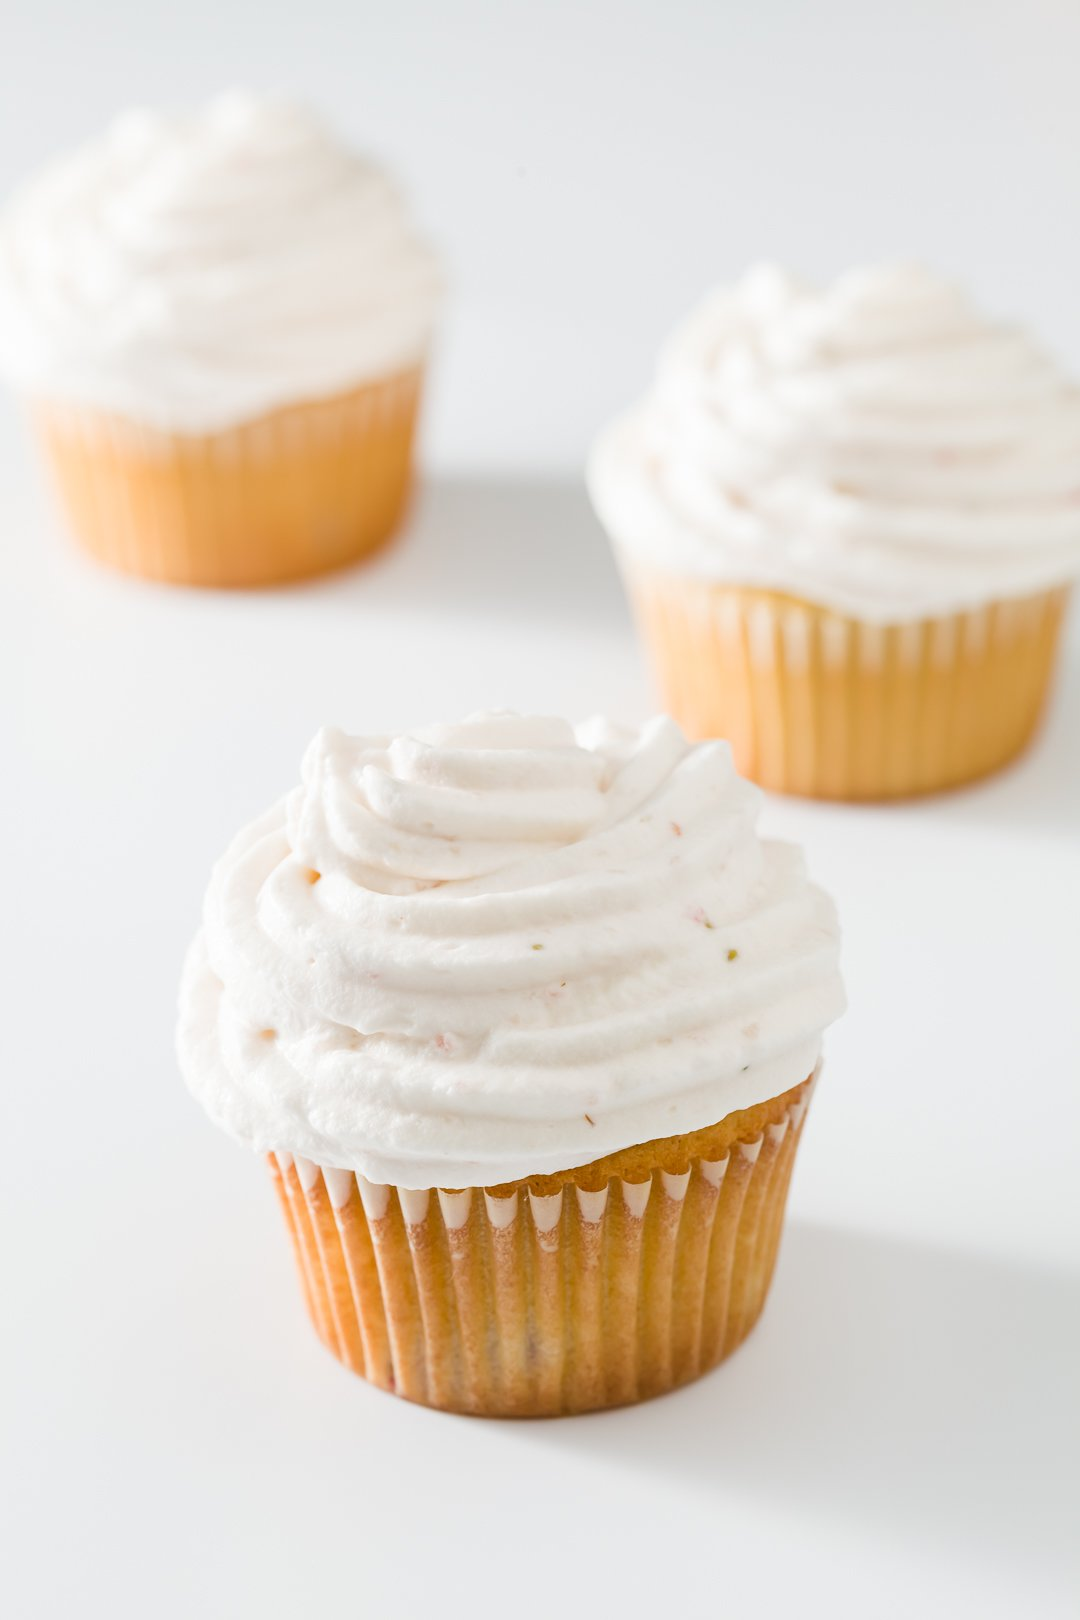 Vanilla Cupcakes with Strawberry Whipped Cream Frosting